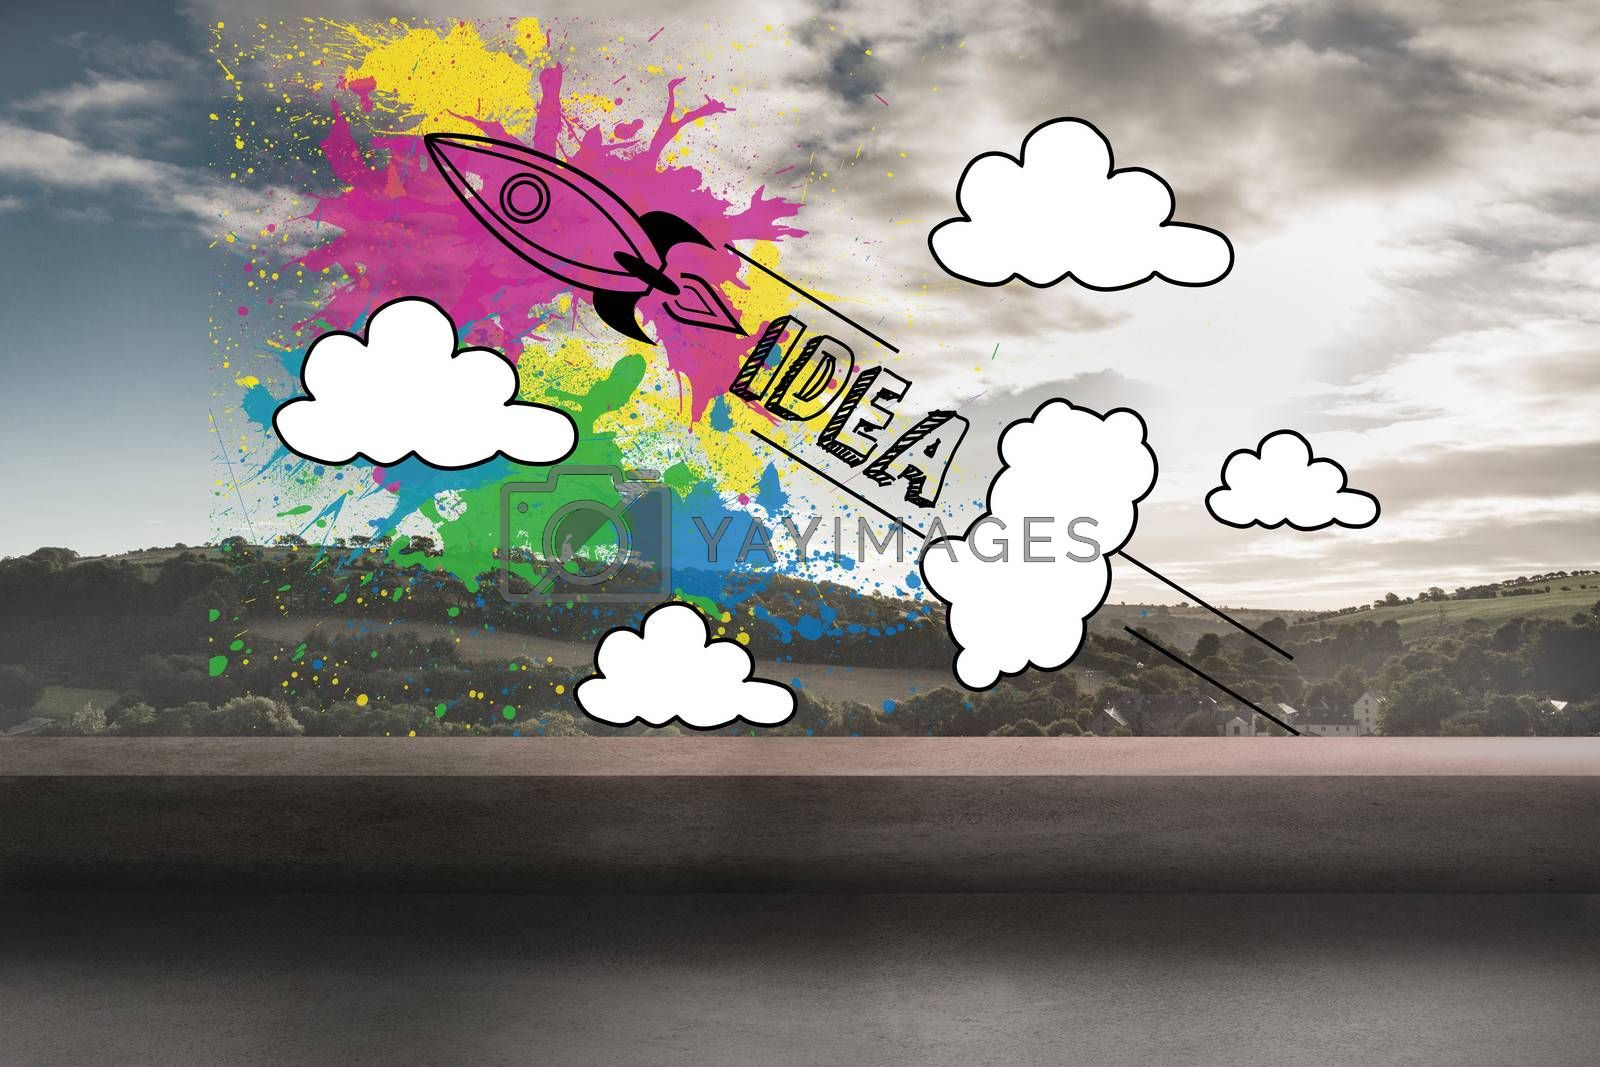 Rocket idea graphic over landscape background by Wavebreakmedia